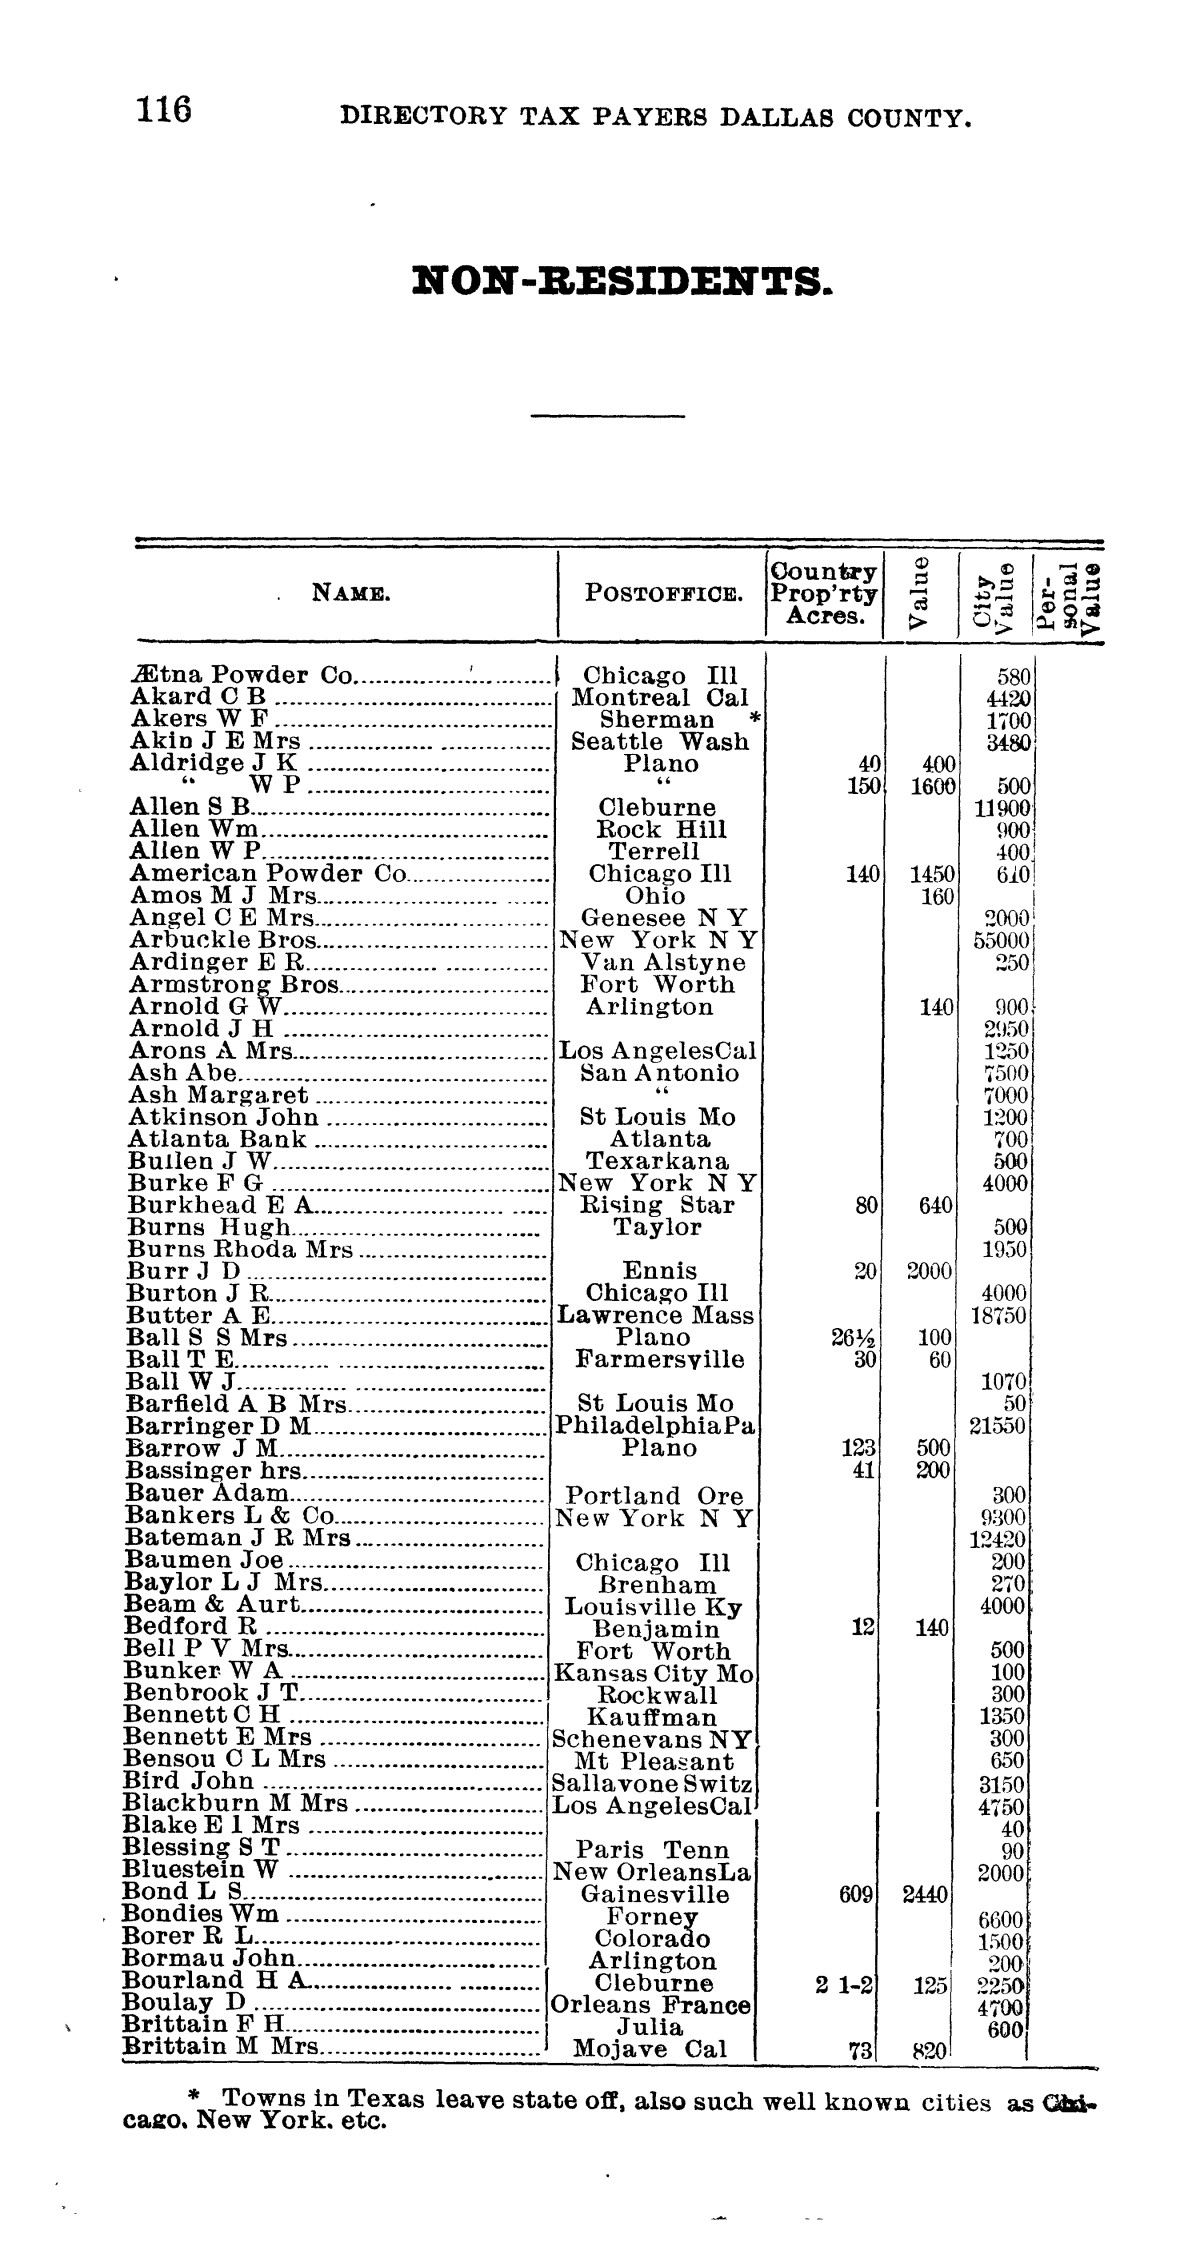 Official directory, taxpayers of Dallas County, Texas                                                                                                      116